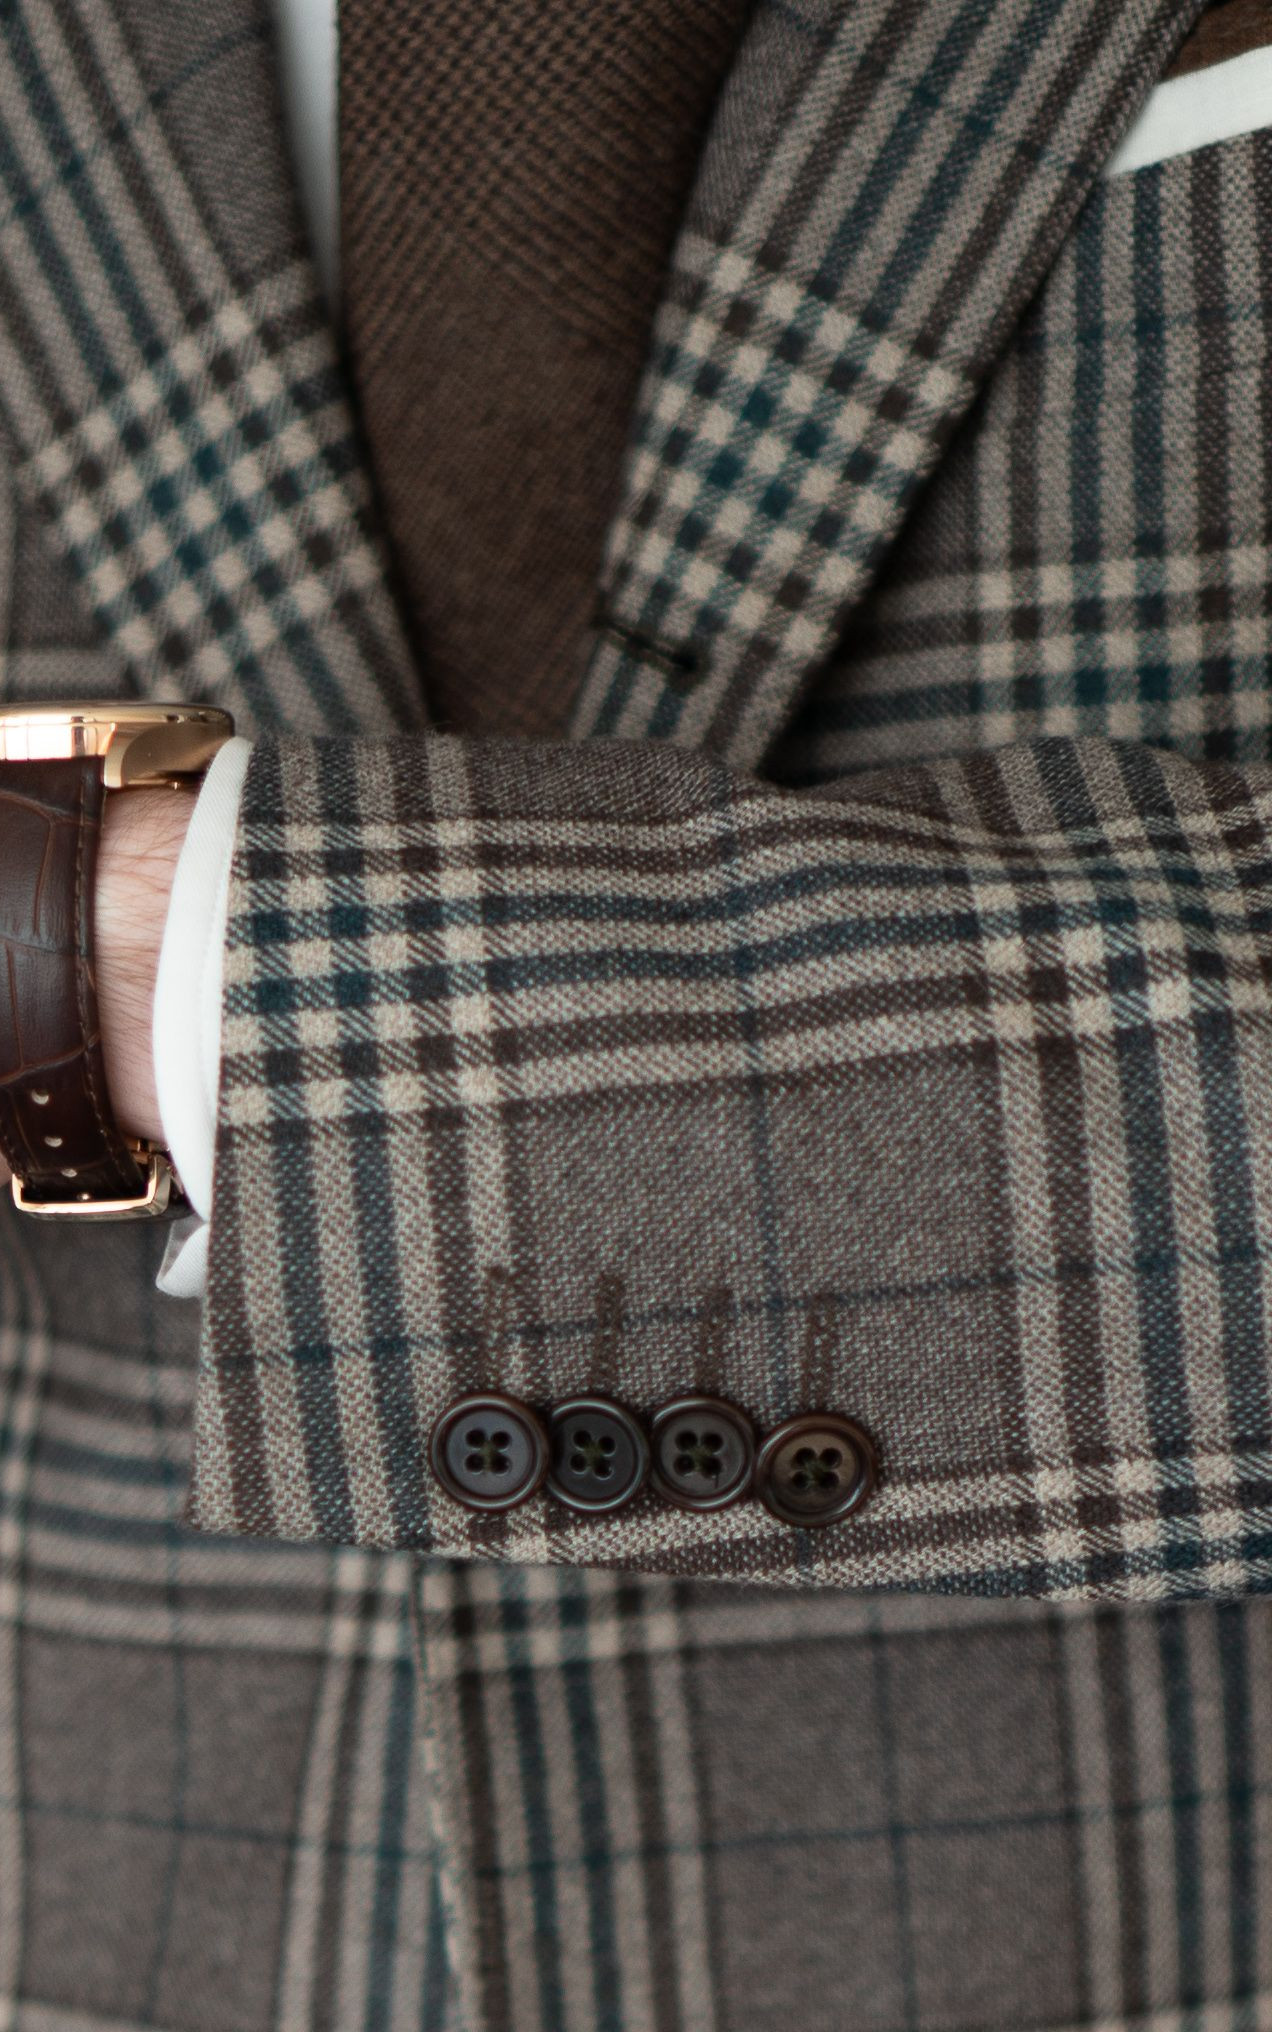 Close-up of the jacket cuff and buttons on the Cavour beige check jacket and the Tuseno First 38 watch